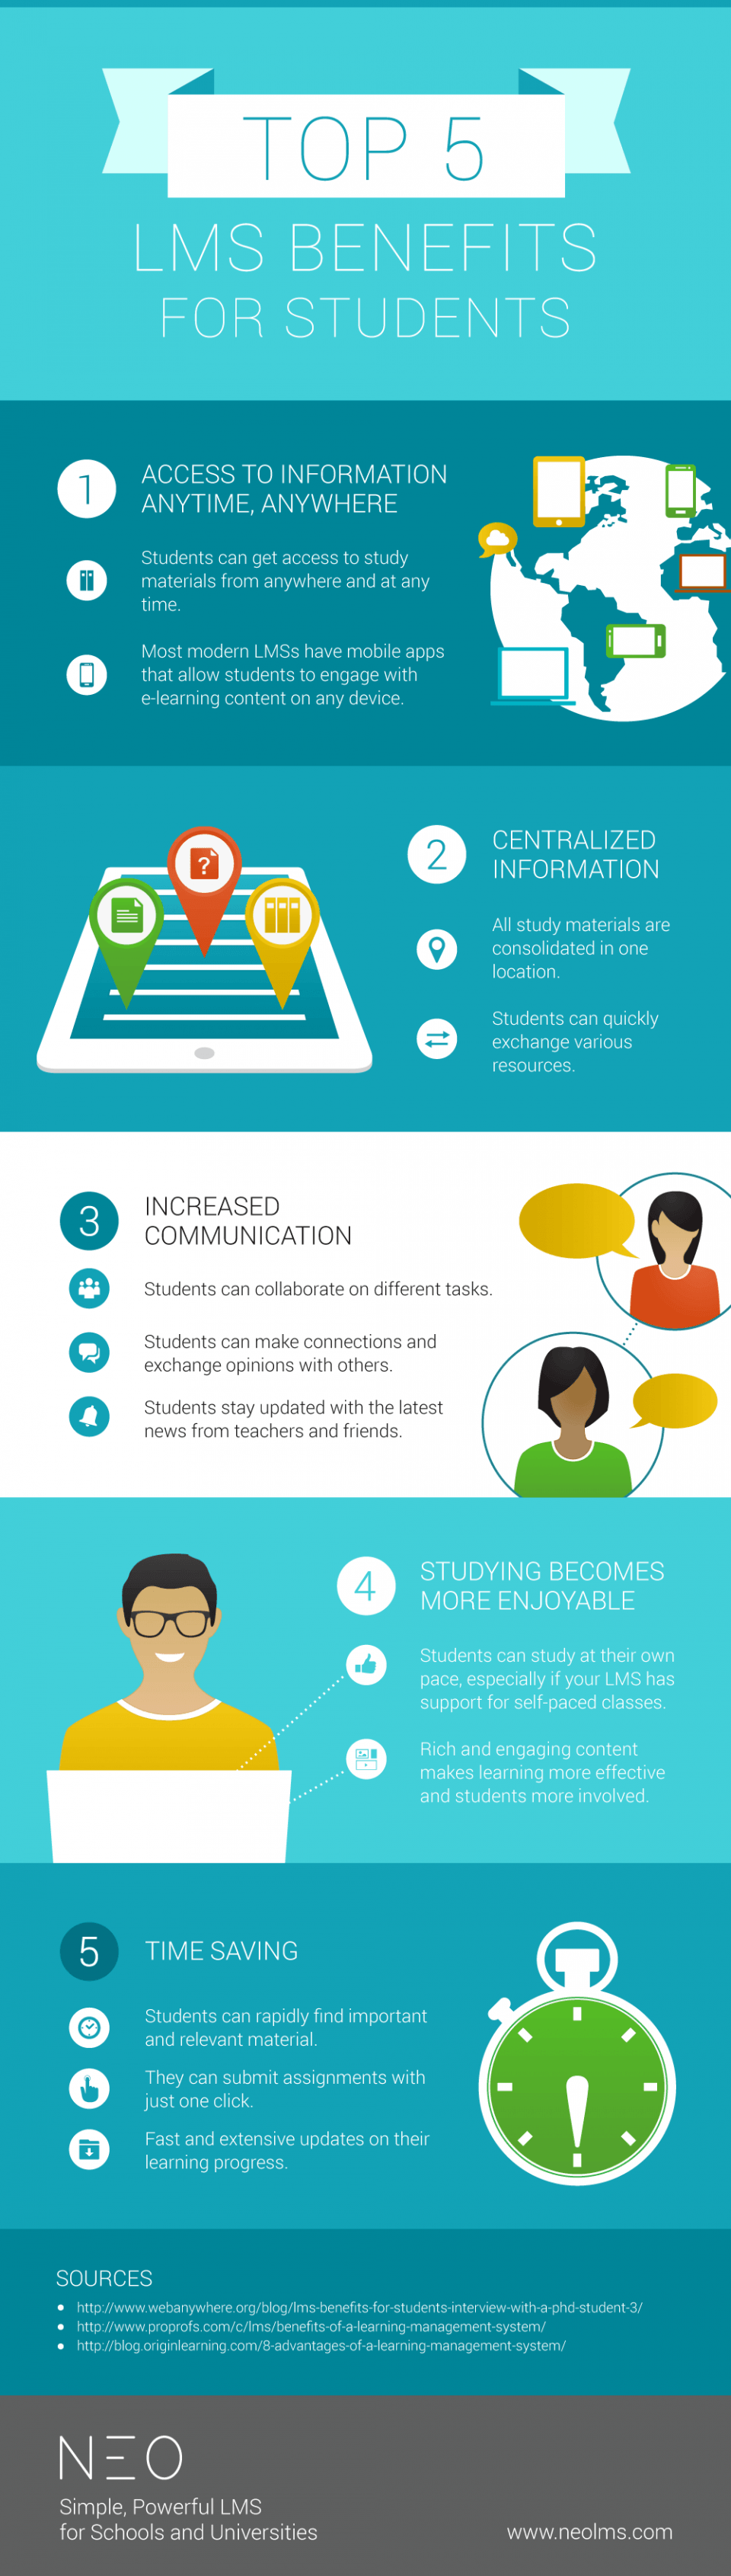 Top 5 LMS Benefits for Students Infographic